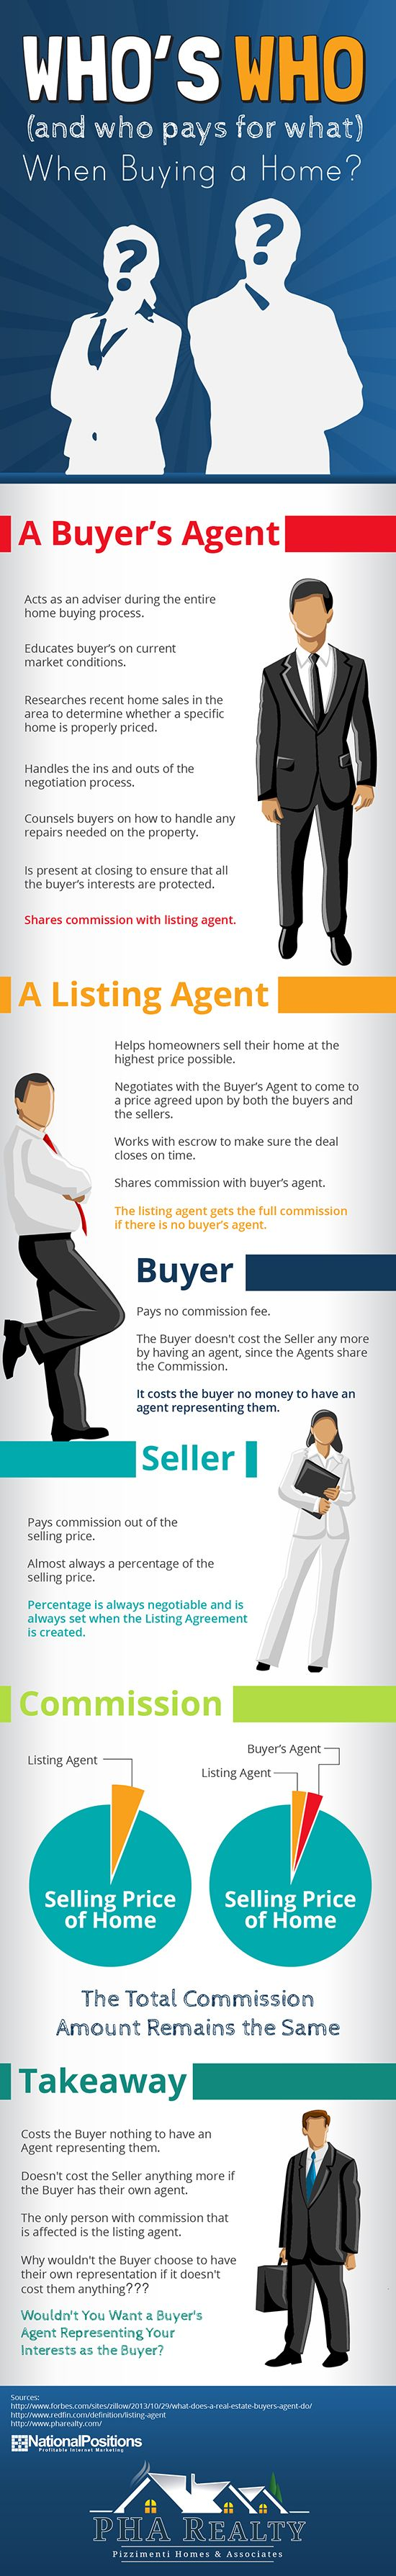 Who's Who in Real Estate .. and who pays for what If you have any questions at all about buying or selling a home, I'm glad to help as a friend, not as someone that's trying to win your business :-) -Anne Nymark (813) 293-9236